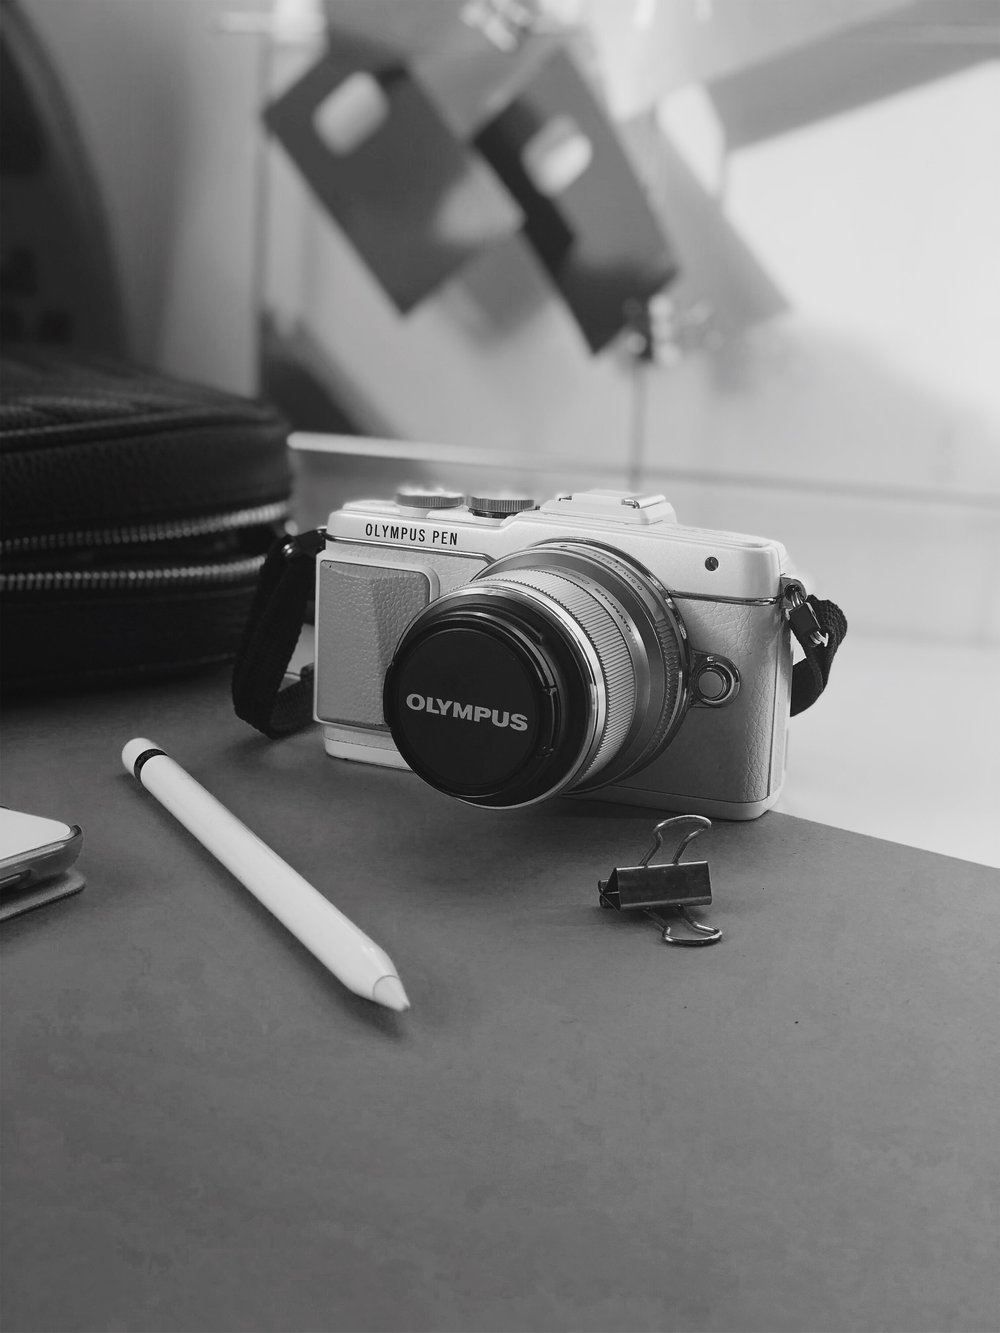 Olympus-pen-photography